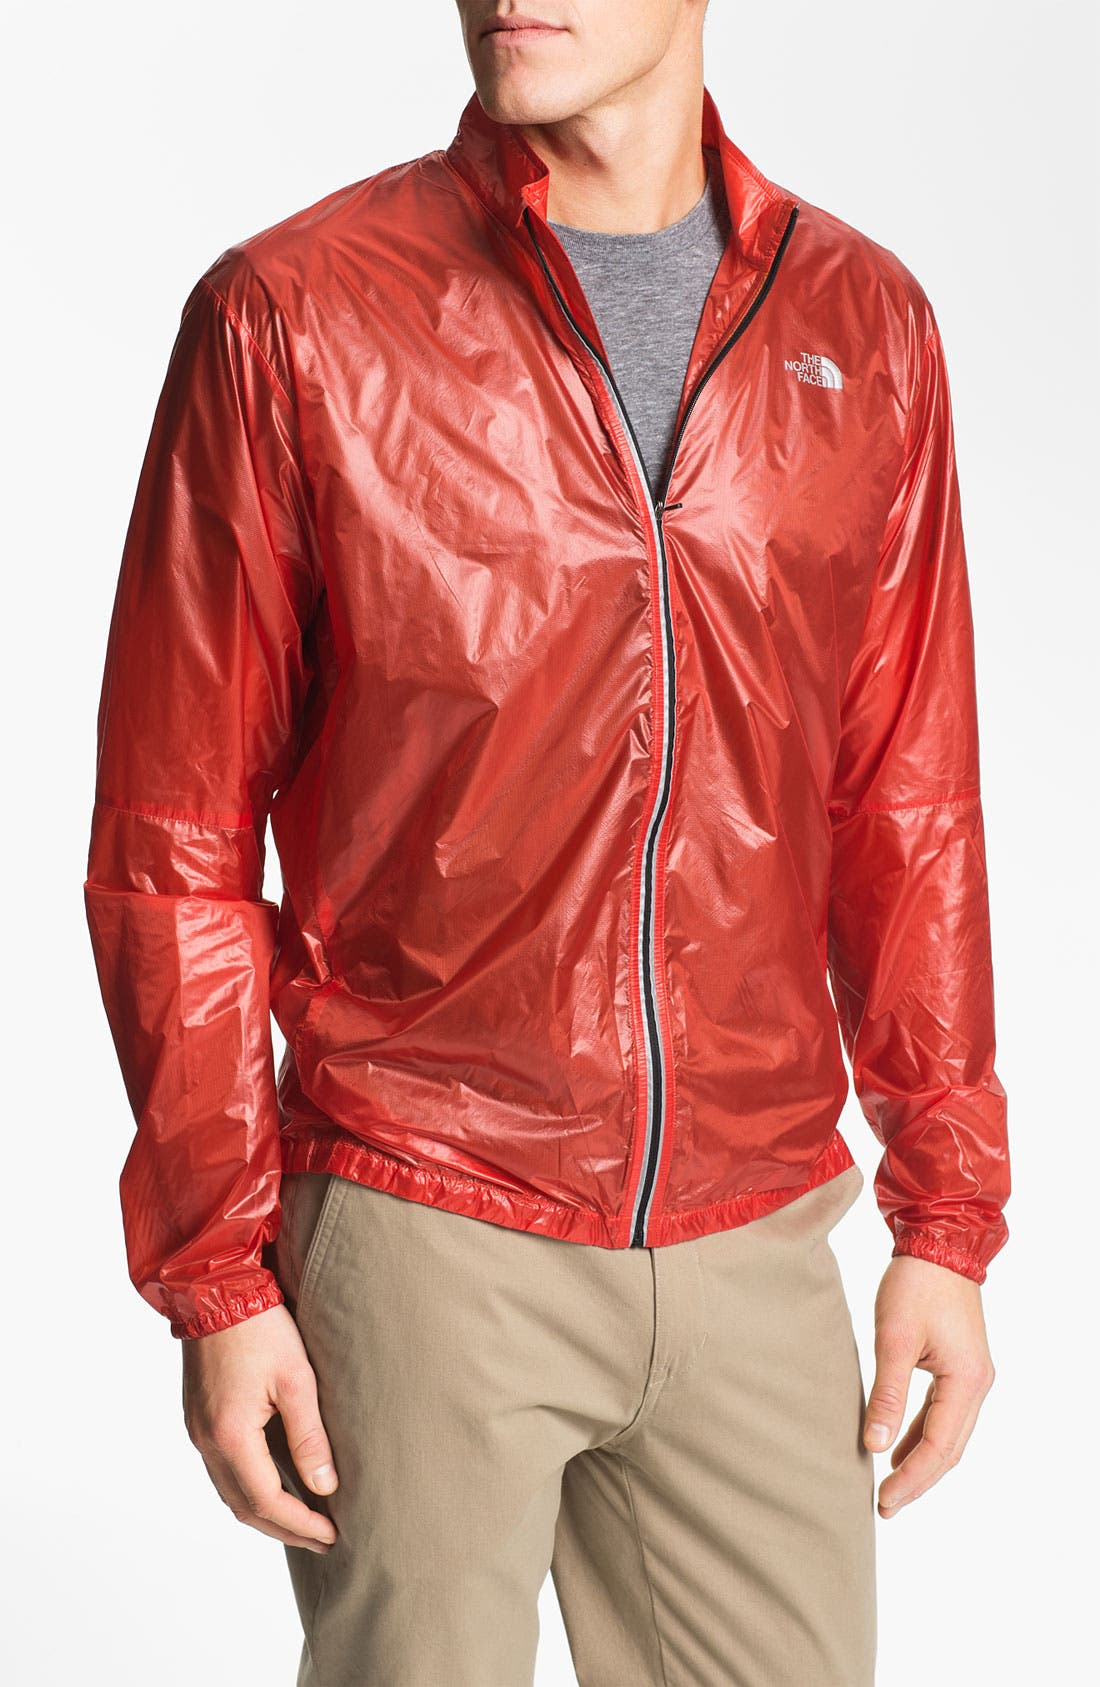 Alternate Image 1 Selected - The North Face 'Accomack' Packable Nylon Jacket